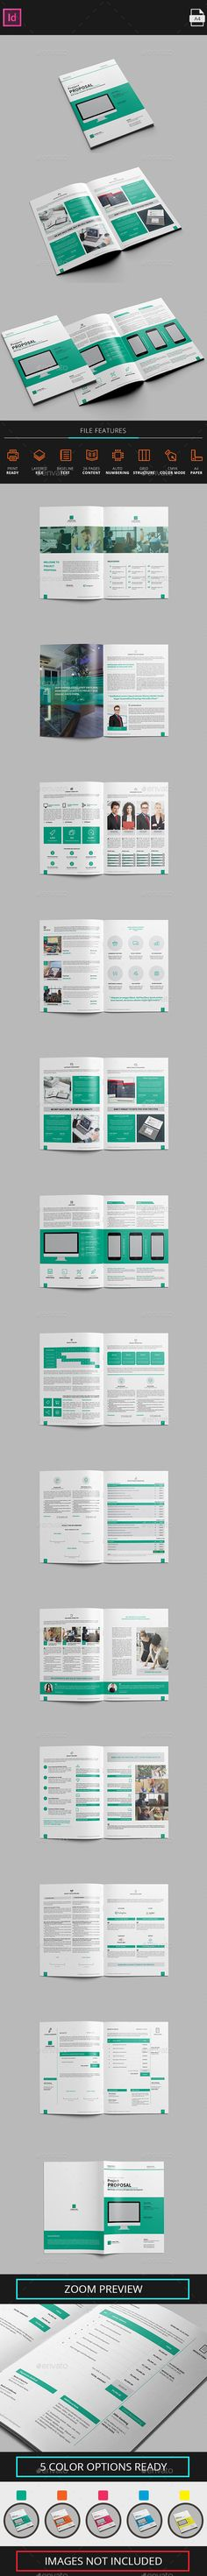 Web Design Proposal Word | Proposals And Proposal Templates